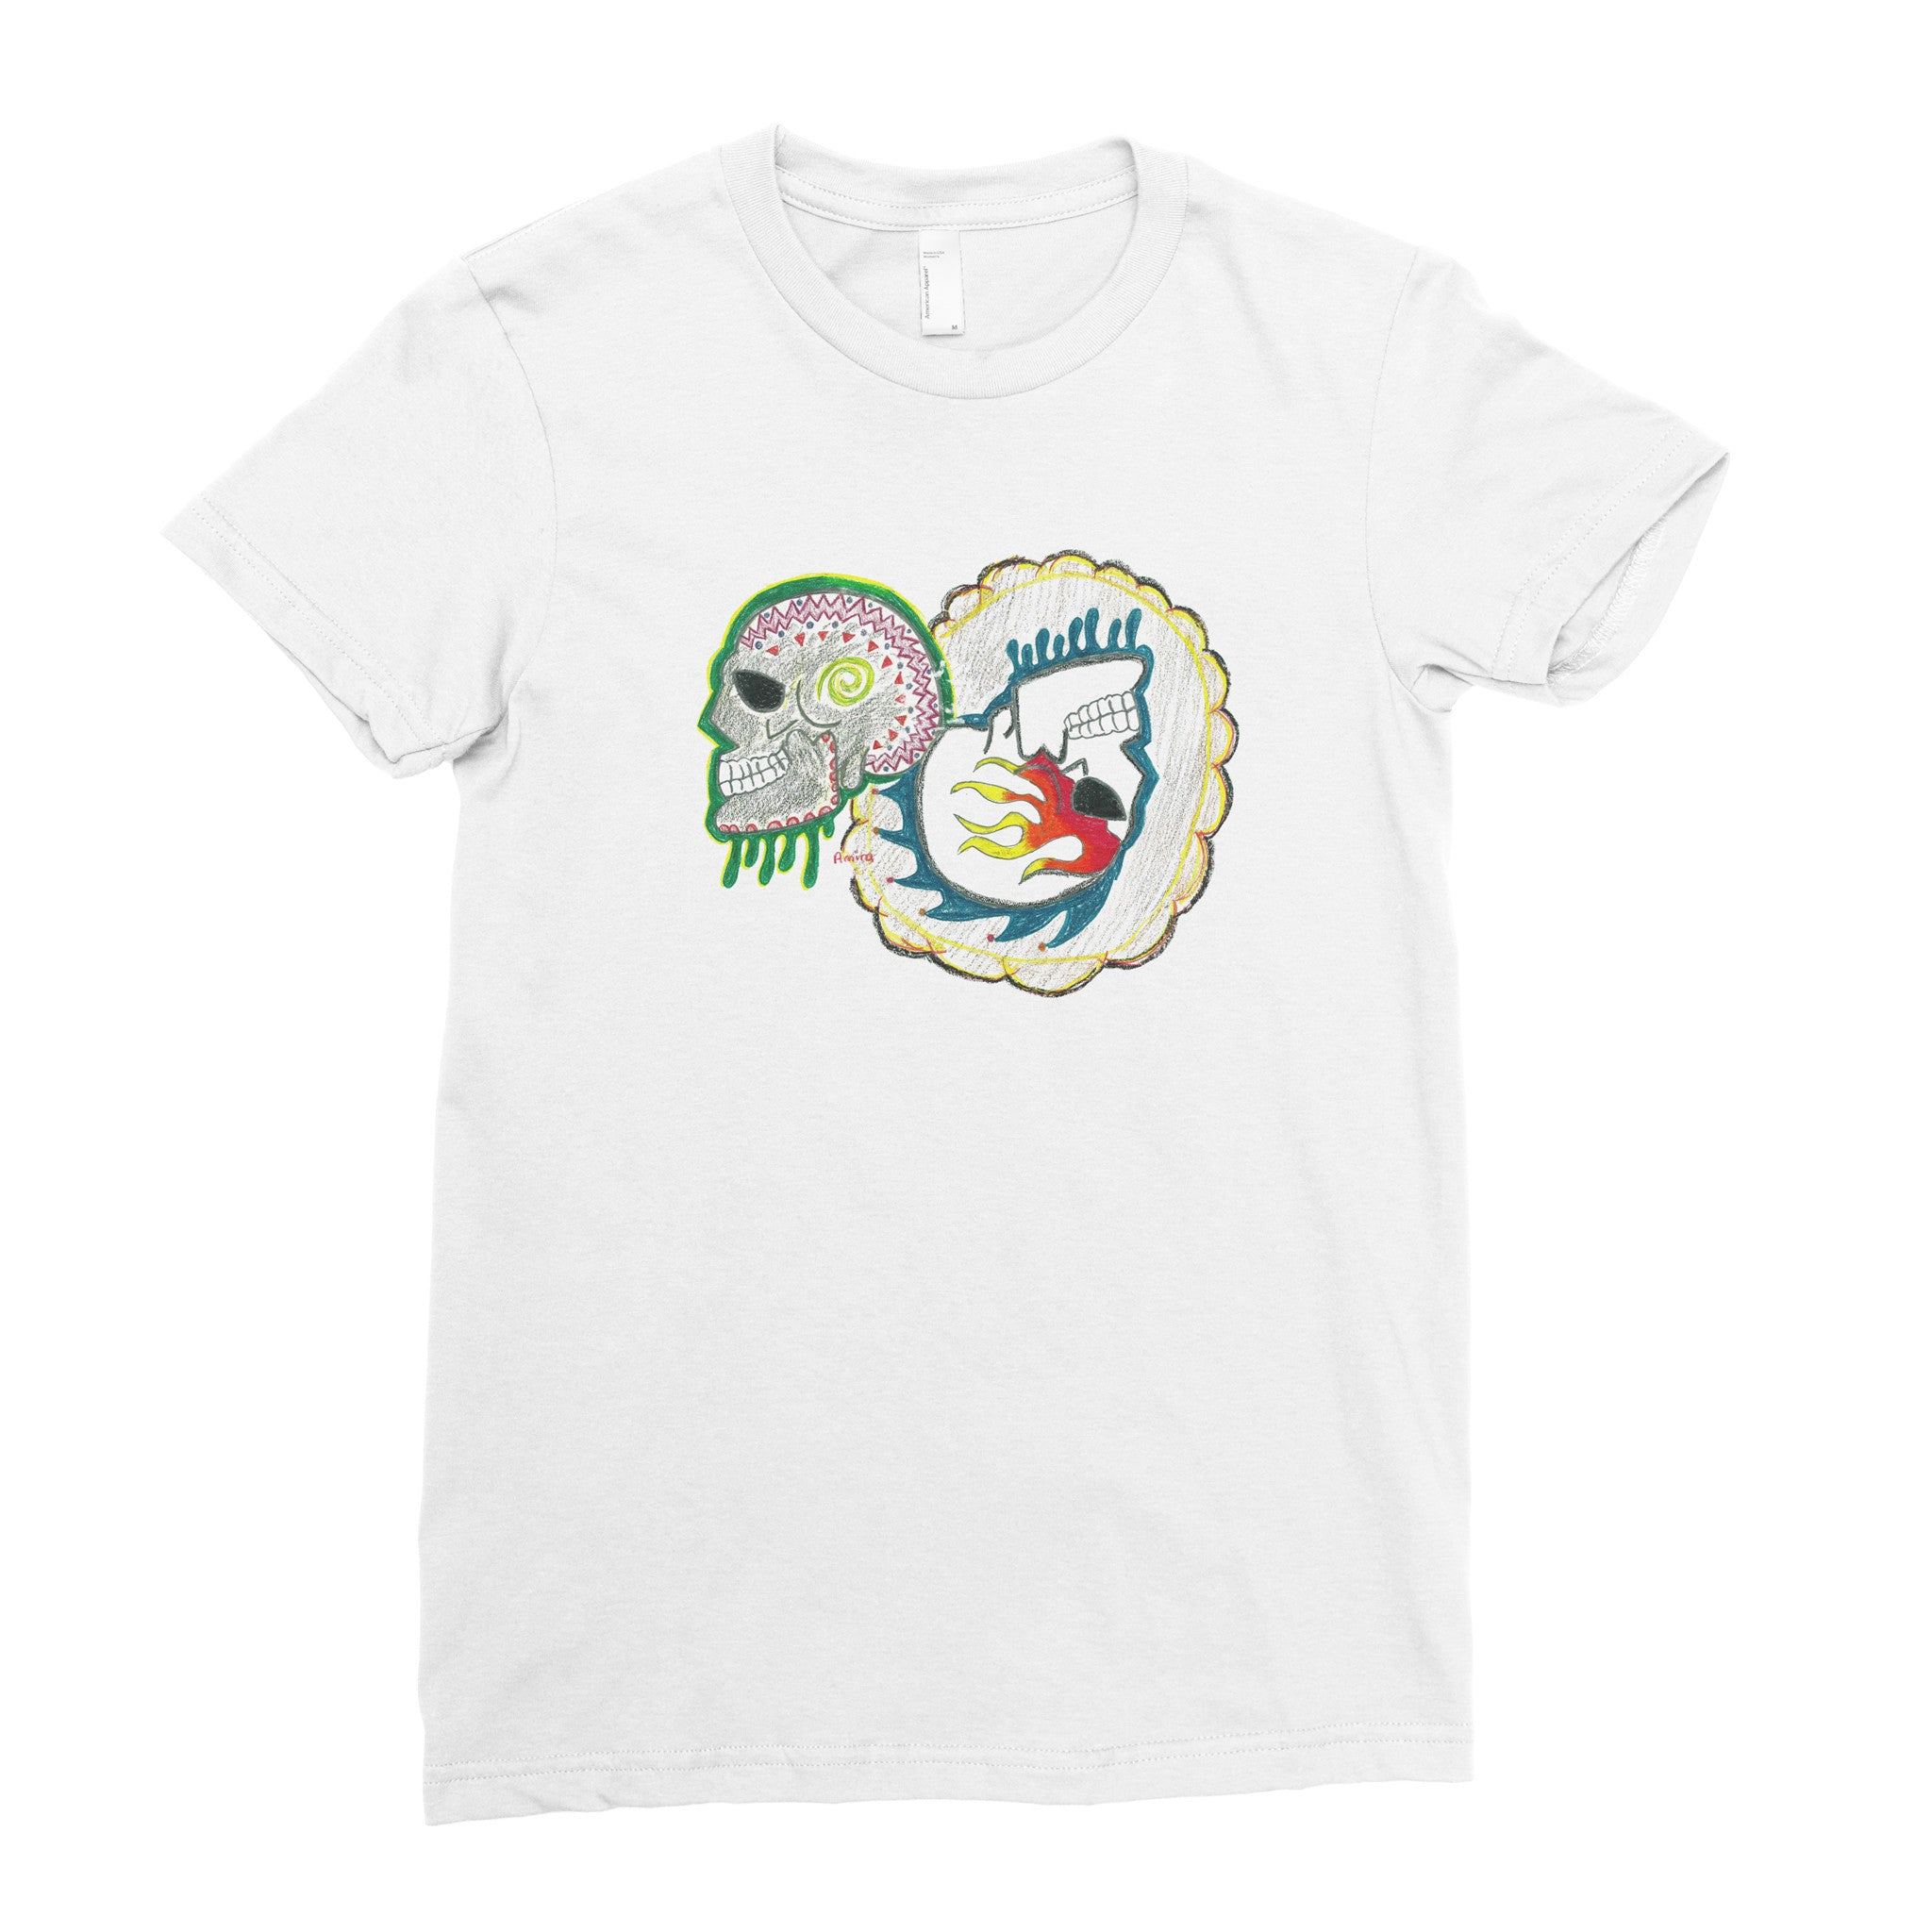 Amira, 8th grade - Adult T-shirt - Rightside Shirts